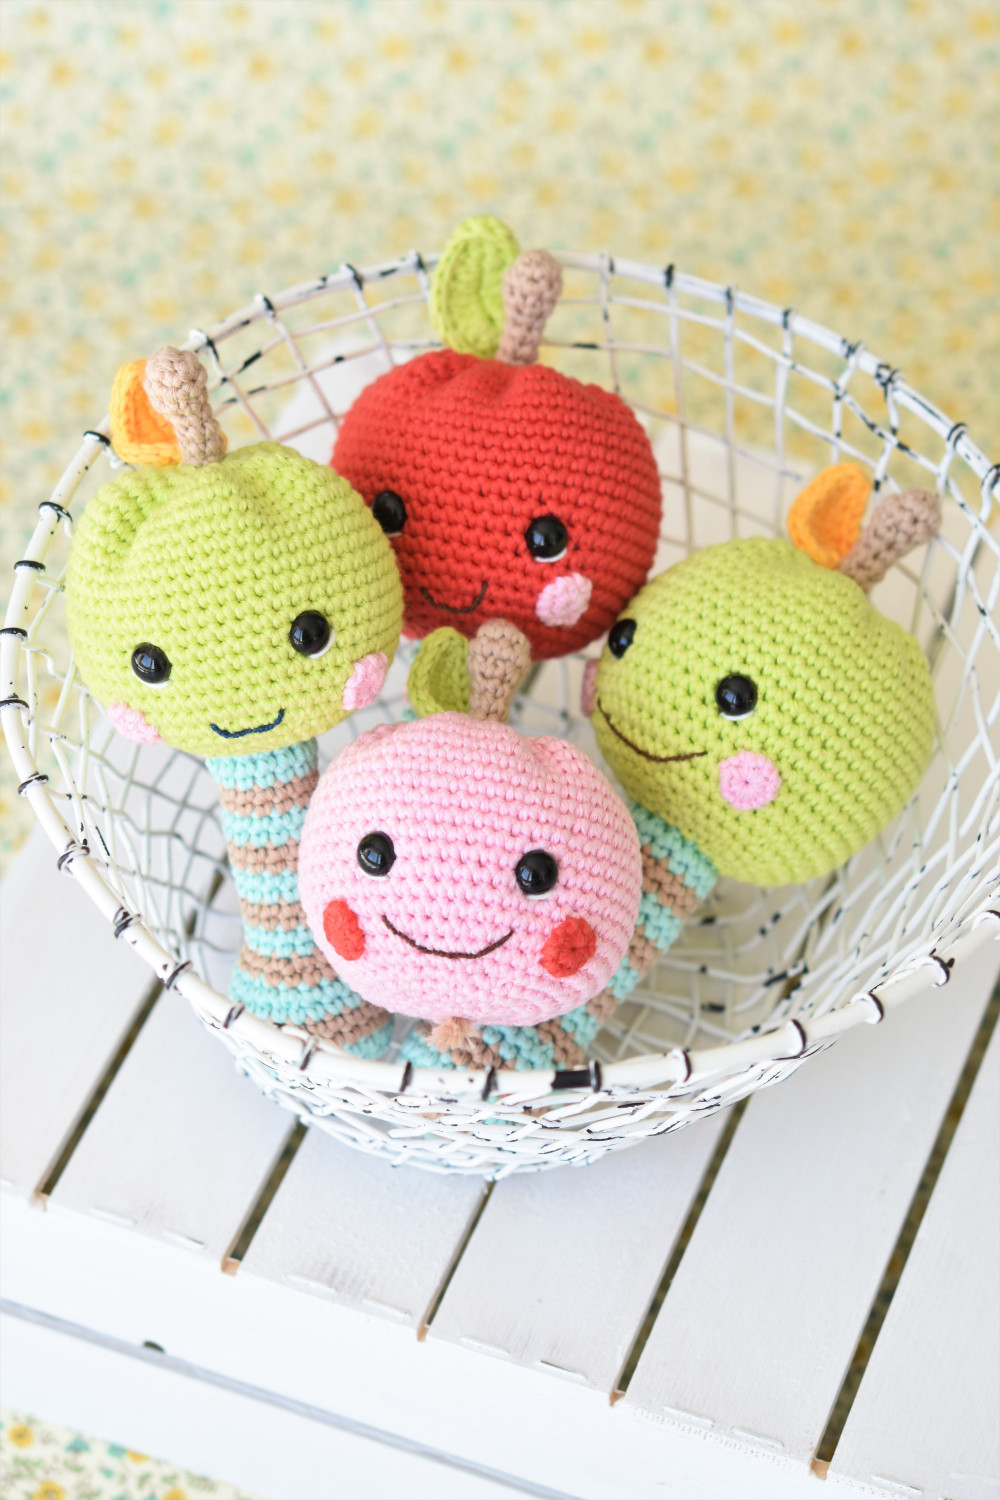 11 Crochet Baby Rattle Patterns – Cute Baby Gifts - A More Crafty Life | 1500x1000